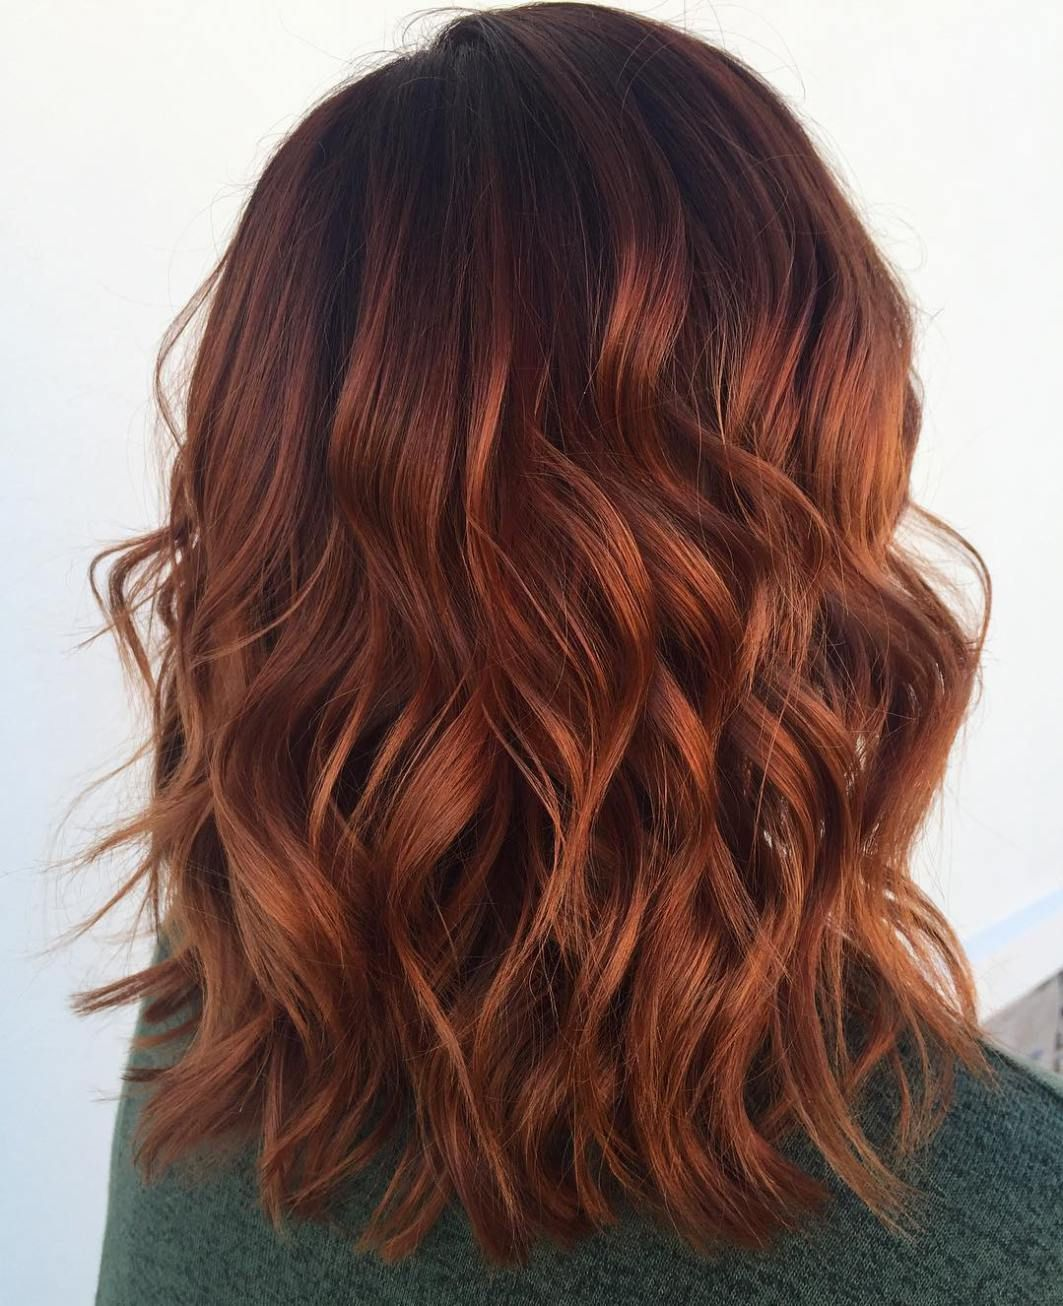 auburn hair colors to emphasize your individuality lob hair